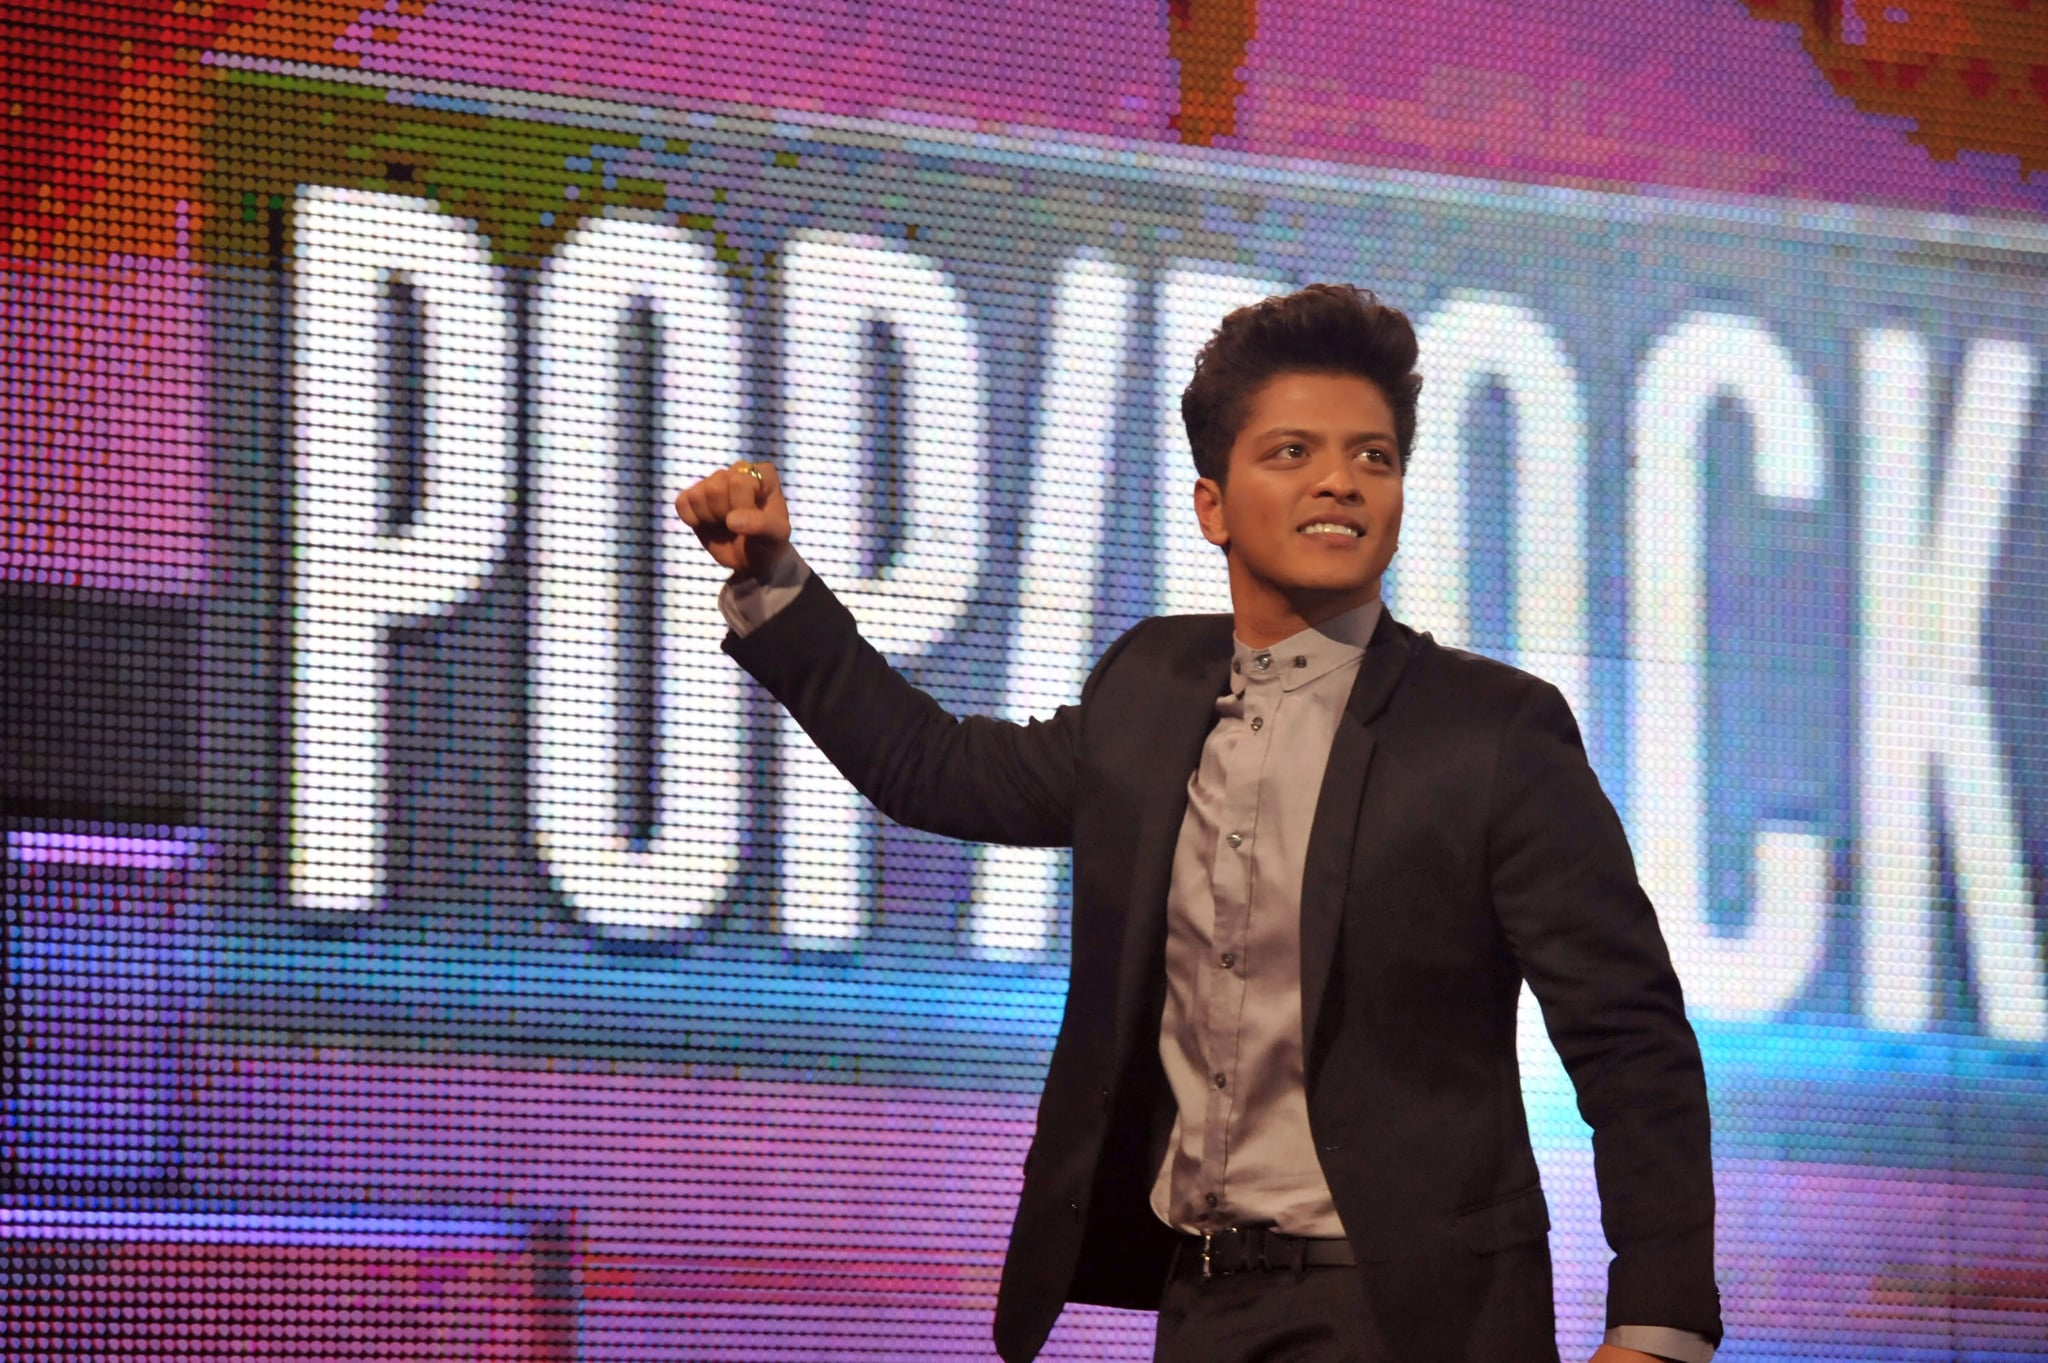 Bruno Mars put his fist in the air.